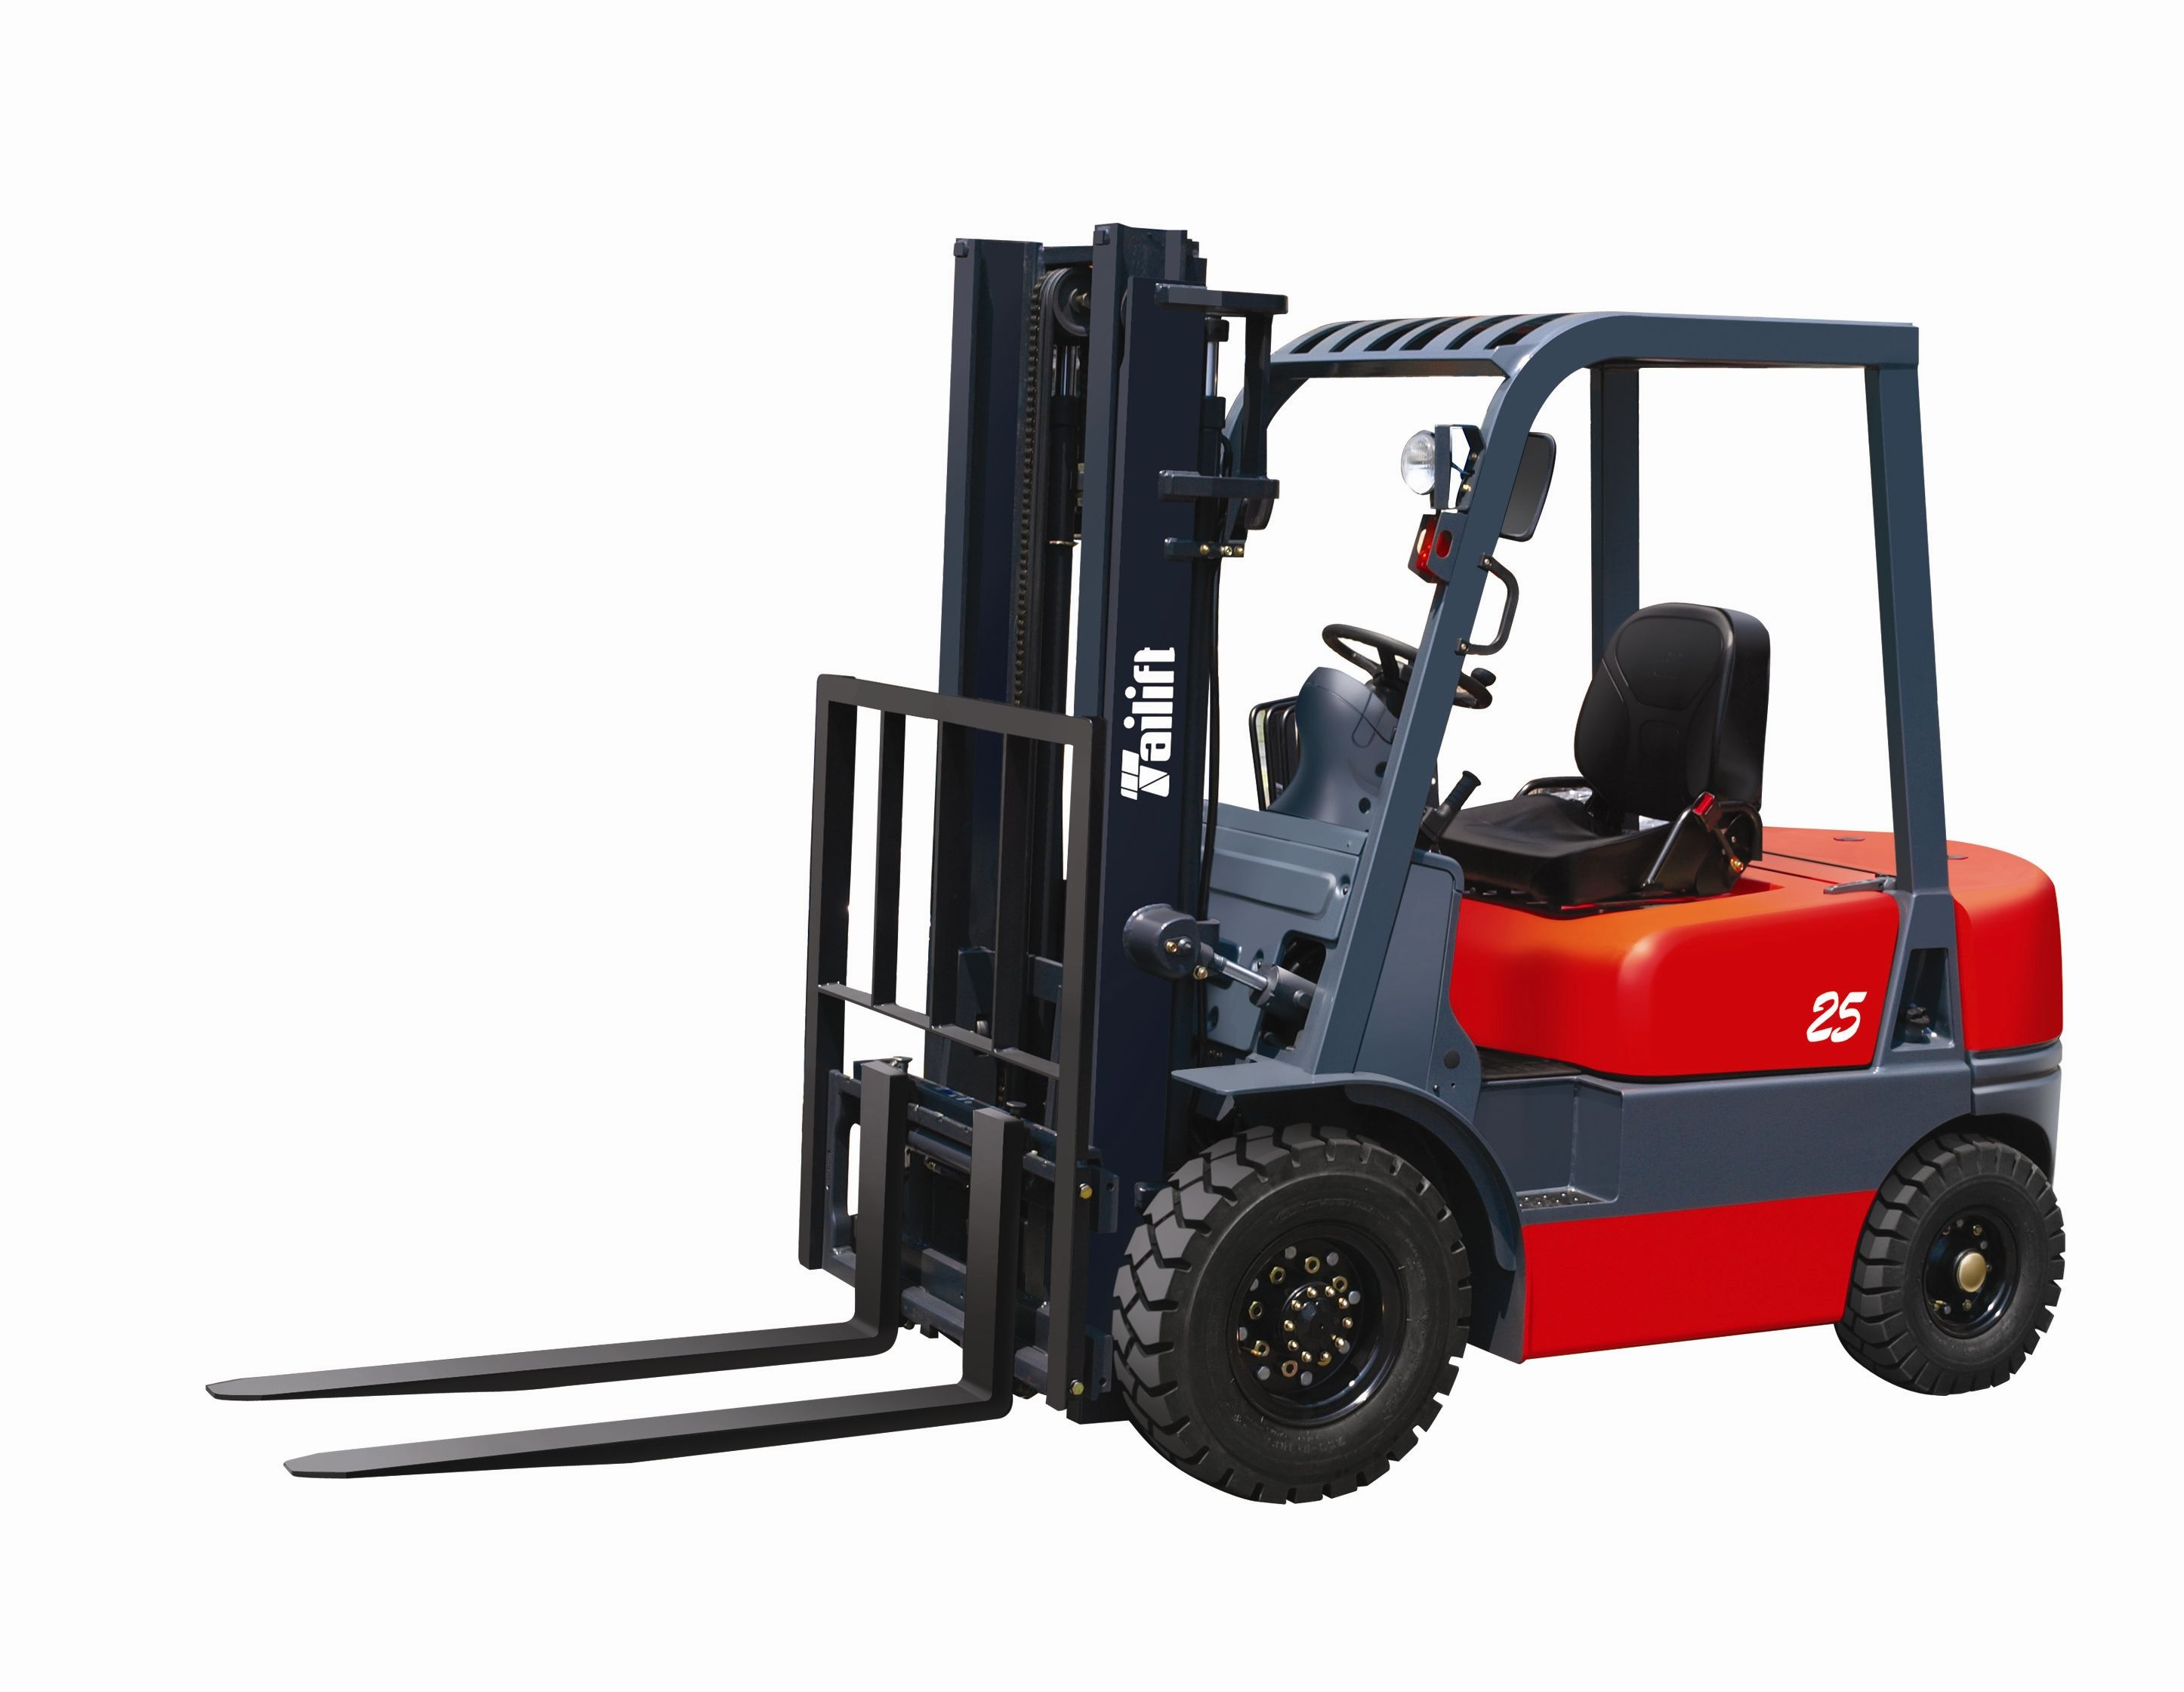 Forklift sales service rental repair parts and certification forklift sales service rental repair parts and certification forklifts for sale or rent pinterest 1betcityfo Image collections